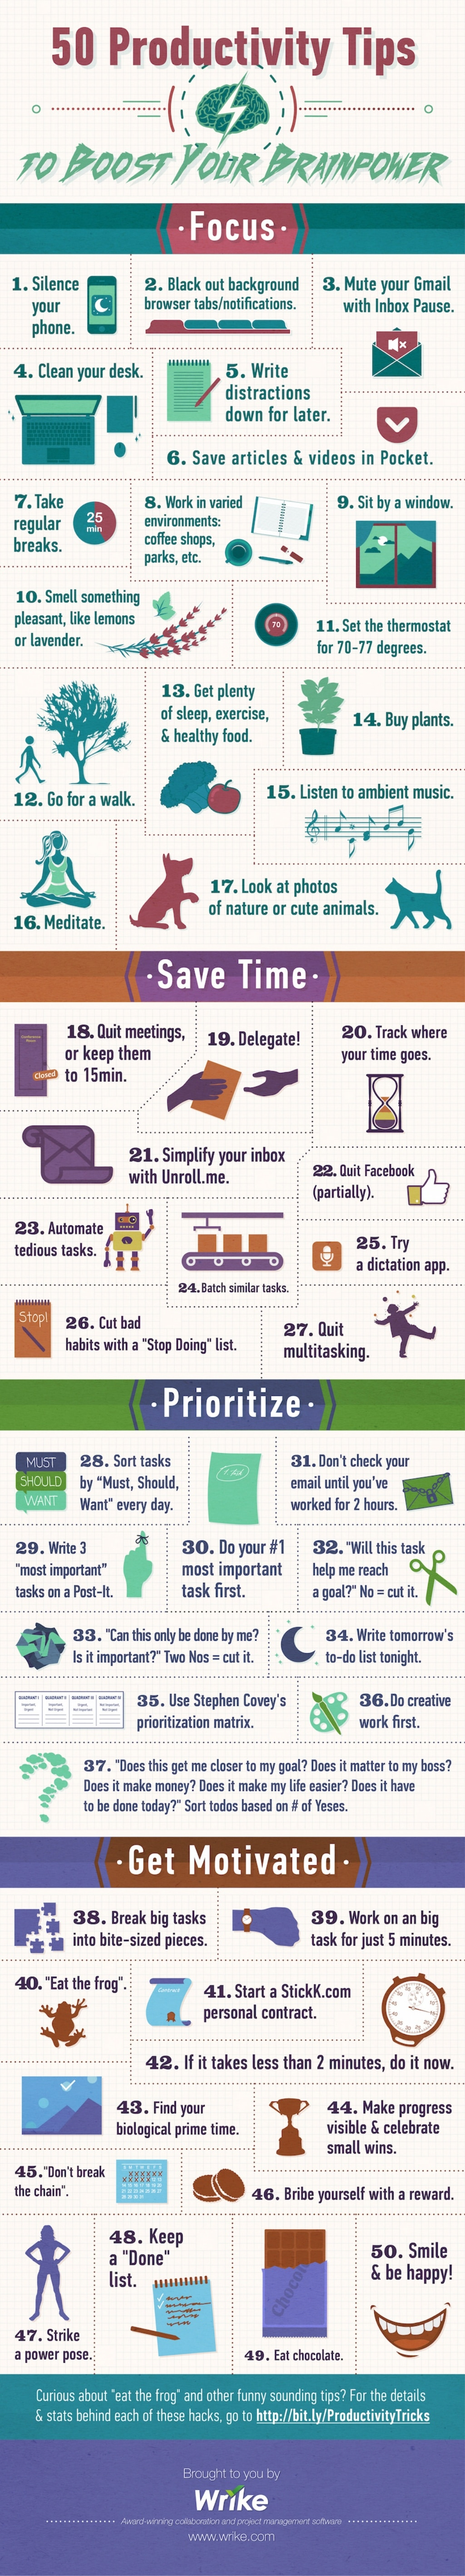 50 Productivity Tips To Boost Your Brainpower [Infographic]